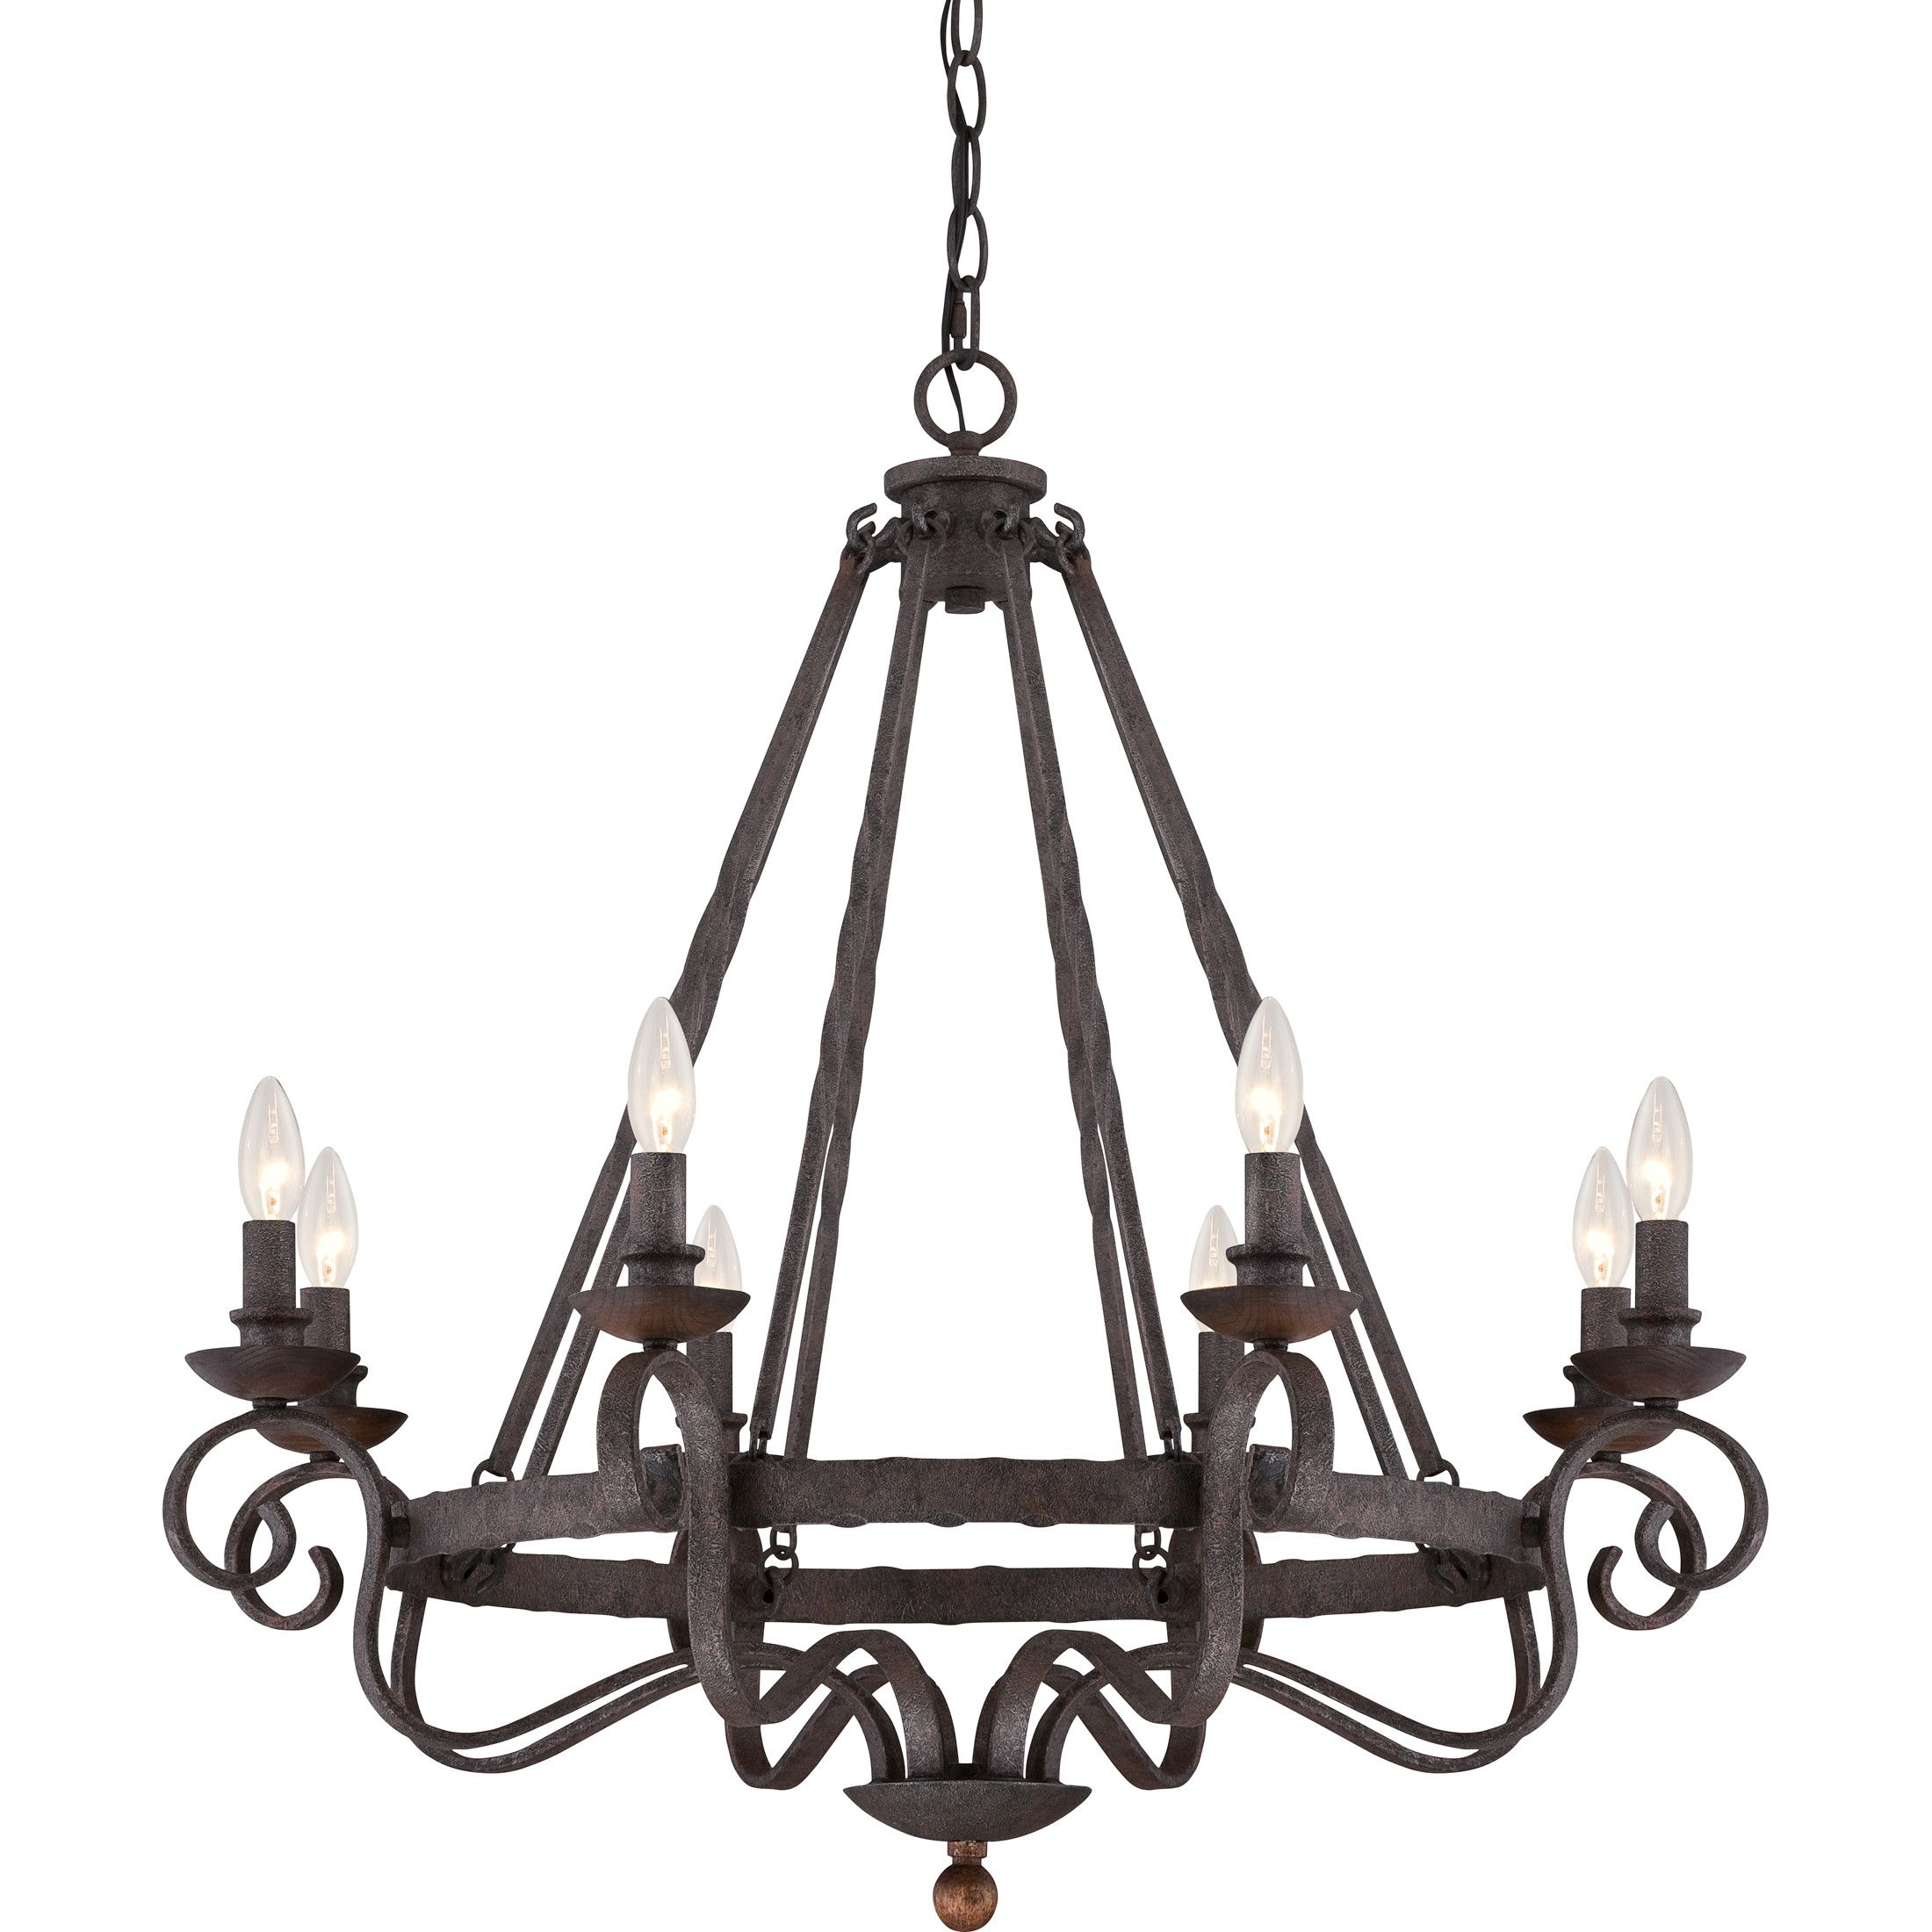 Quoizel Noble 8 Light Chandelier In Rustic Black Rustic Chandelier Chandelier Lighting Candle Chandelier